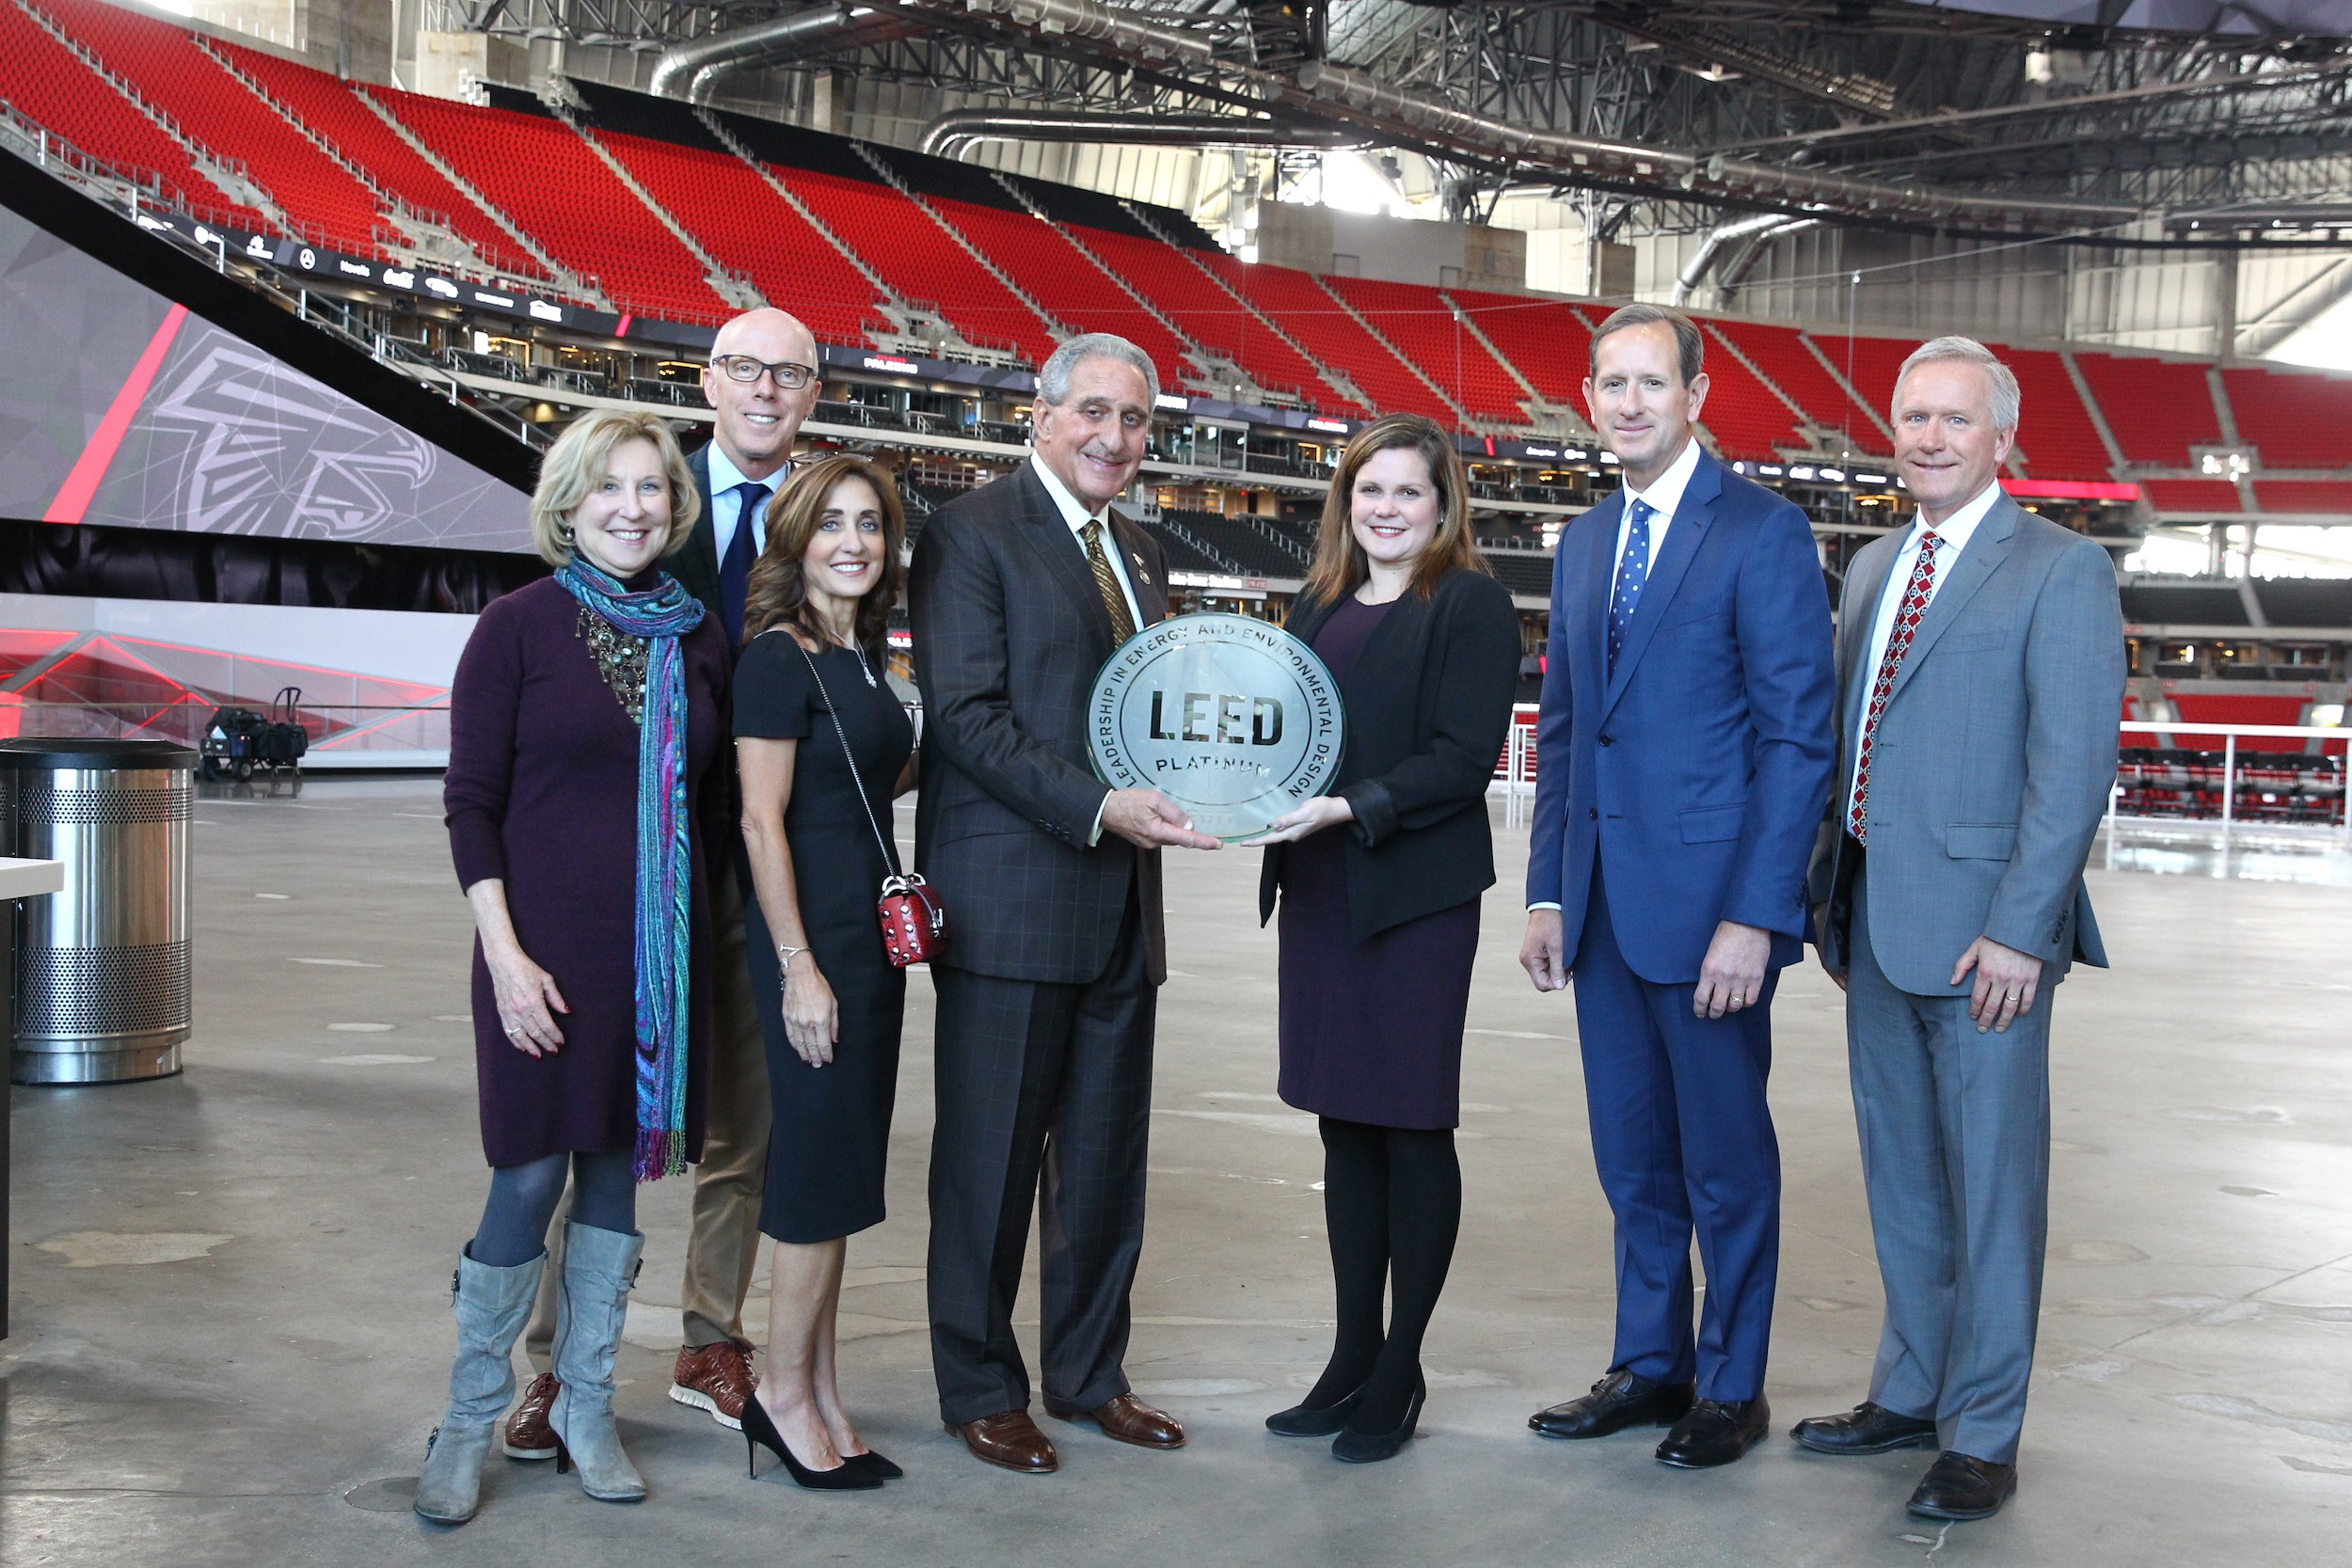 Arthur Blank, owner of the two teams that play in the stadium (the Atlanta United FC and the Atlanta Falcons), with his staff and the Platinum Leed award.